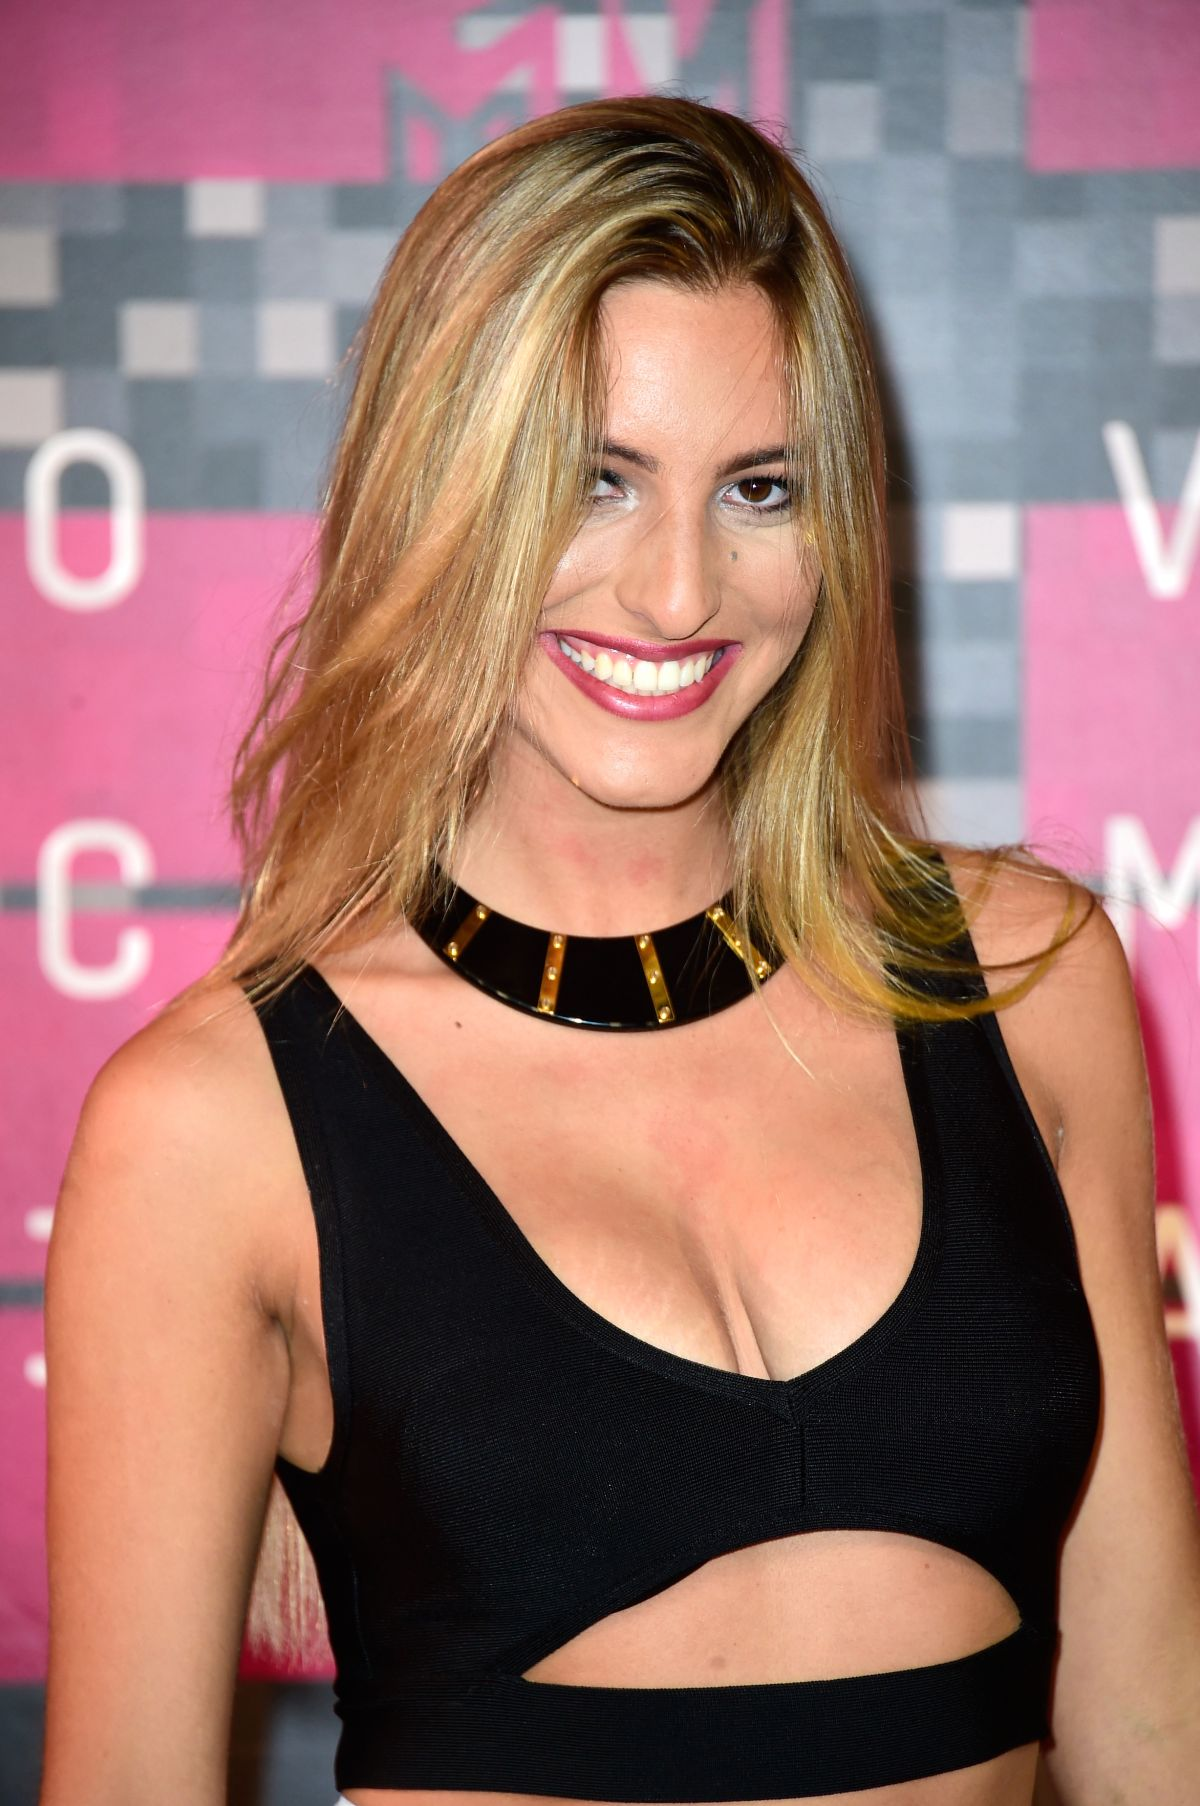 Lele Pons turns up the heat by wearing a sexy see-through swimsuit